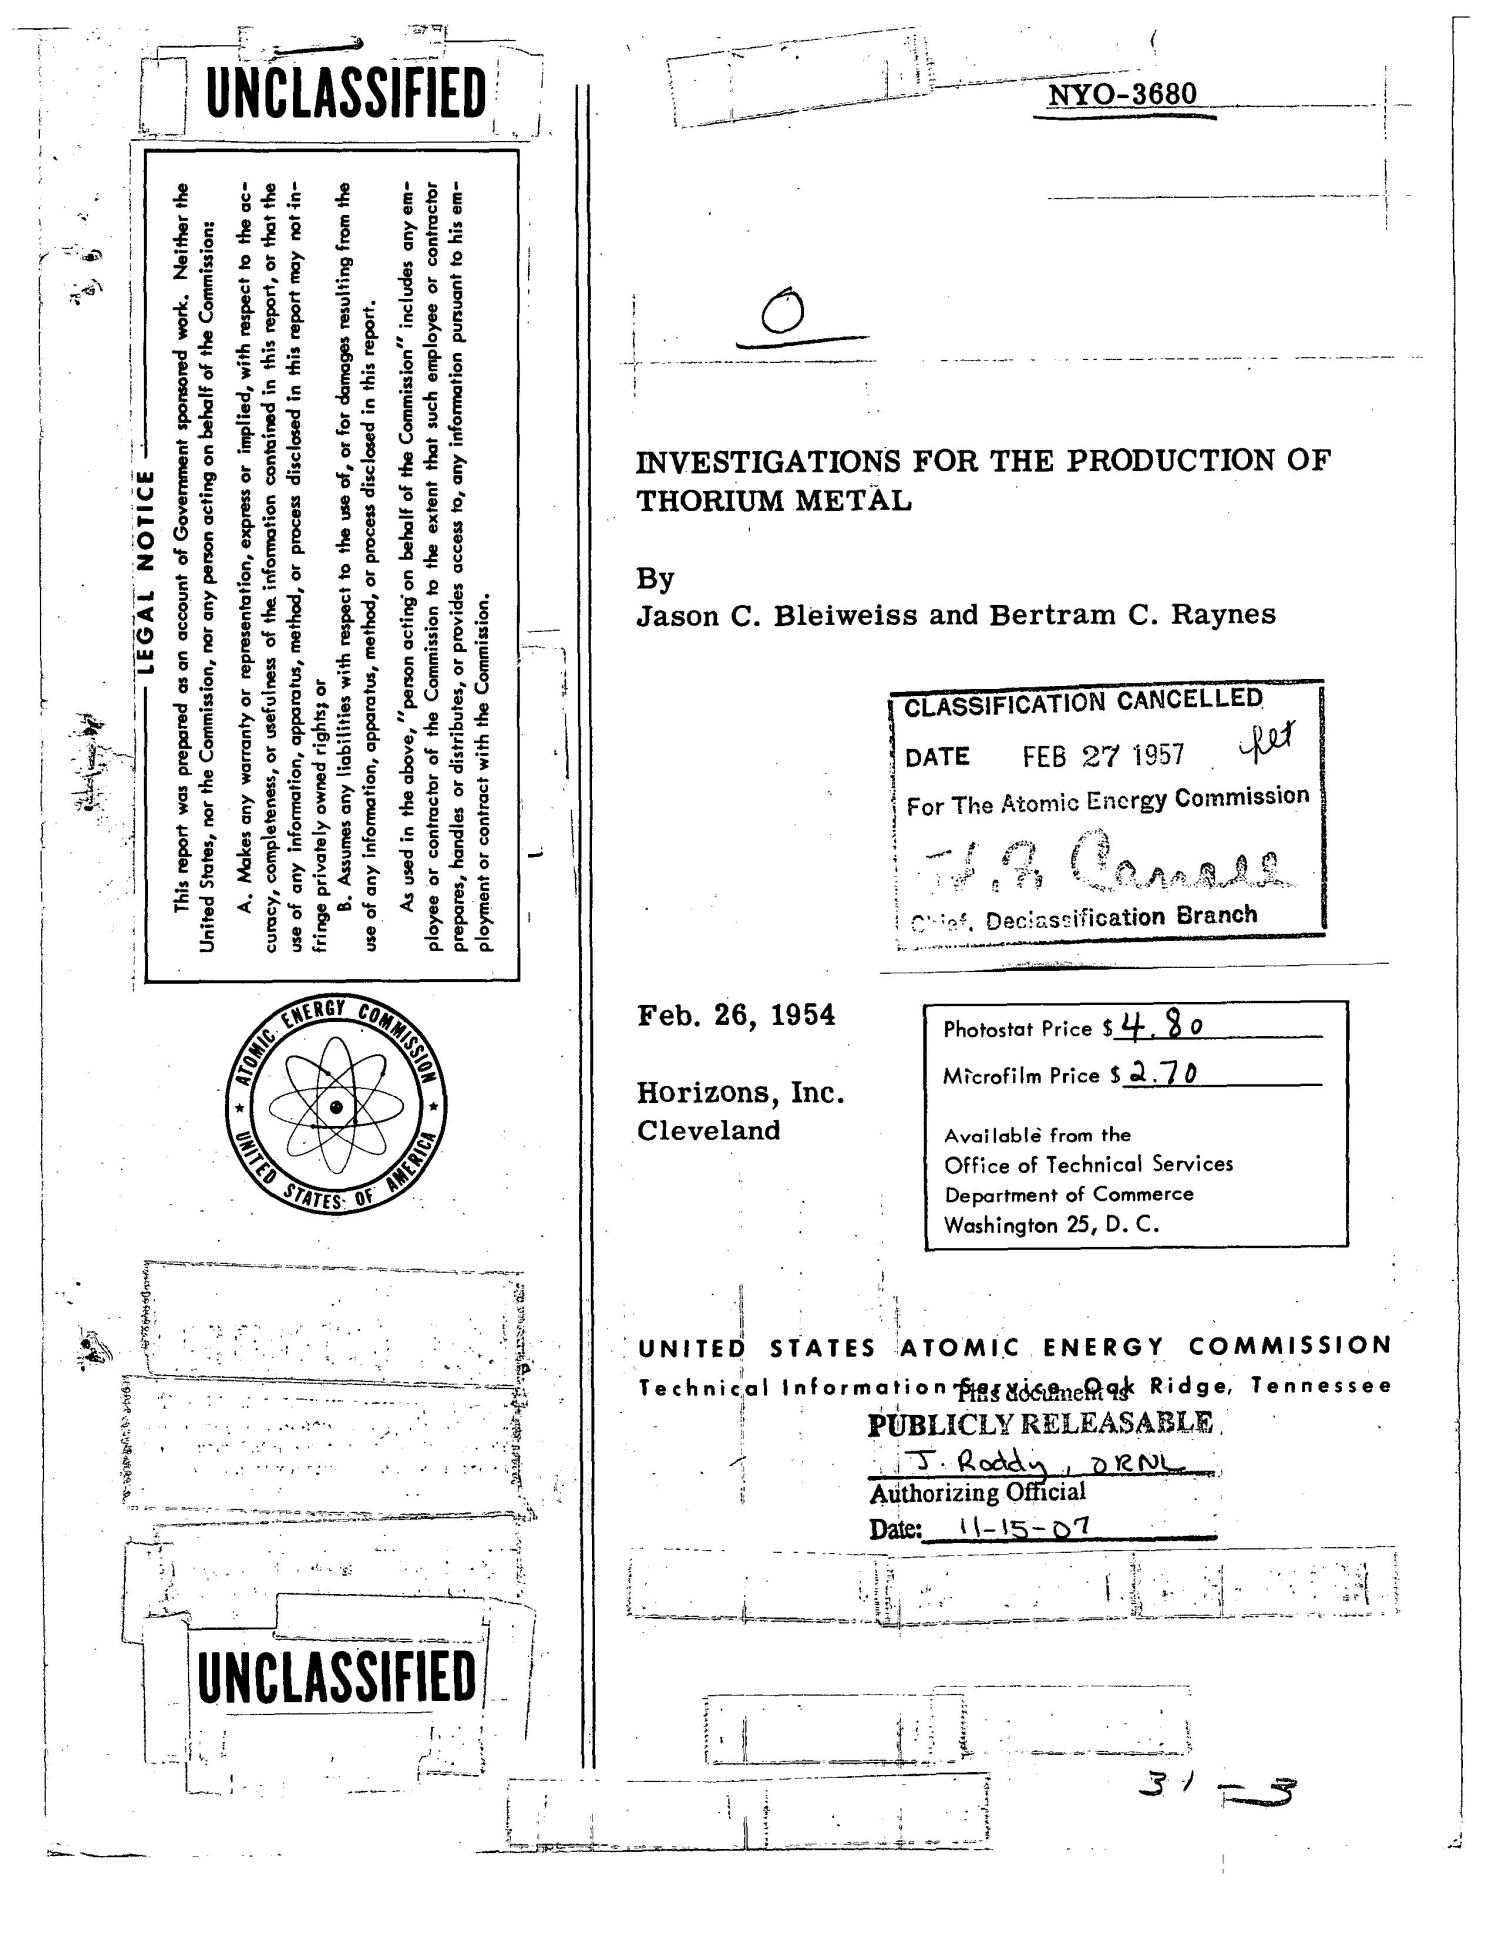 INVESTIGATIONS FOR THE PRODUCTION OF THORIUM METAL. Technical Progress Report for Seventh Quarter, December 1, 1953 to February 28, 1954                                                                                                      [Sequence #]: 1 of 24